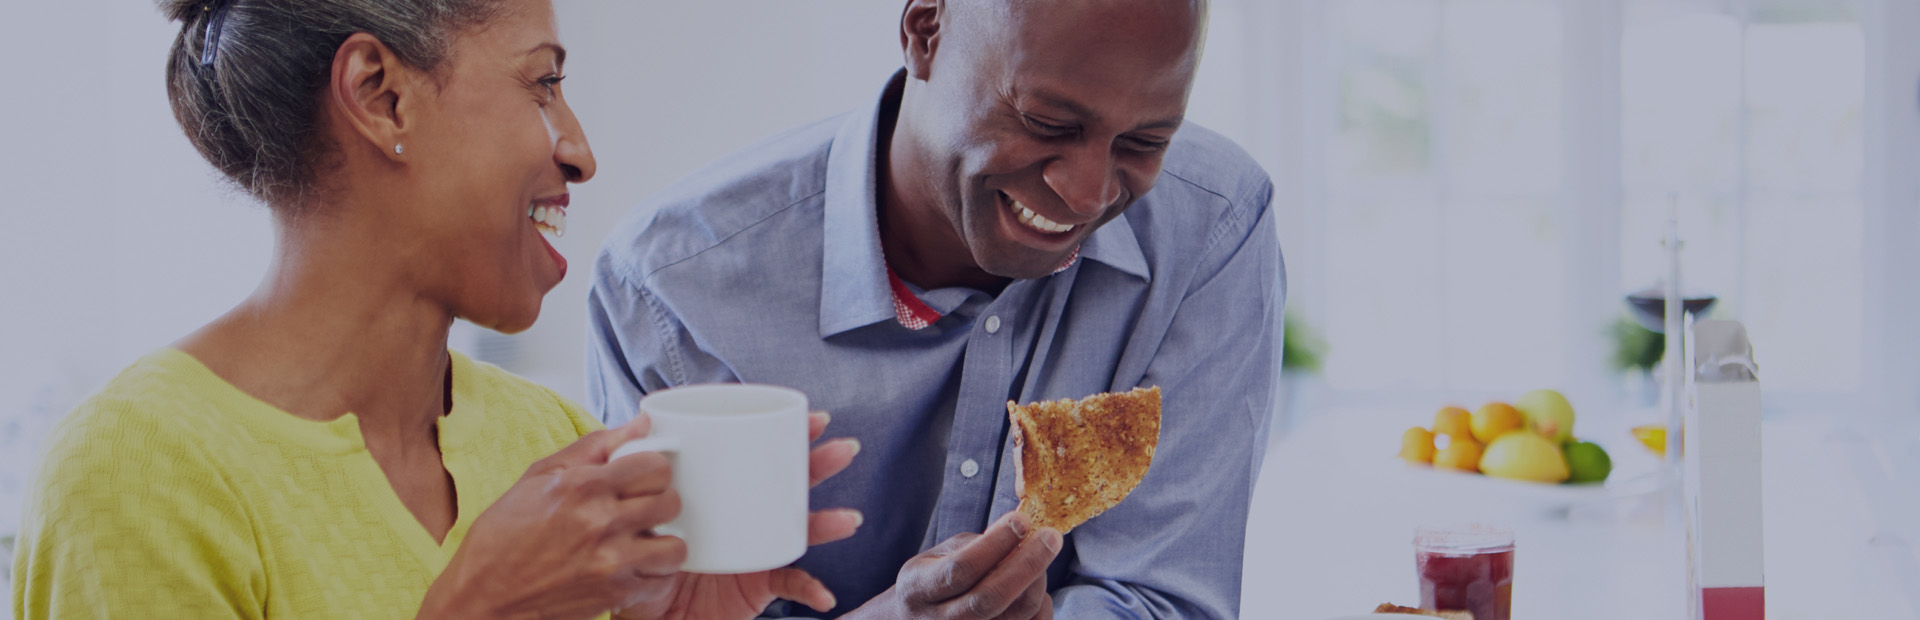 A couple in their 40s are laughing over breakfast as they feel secure in making the decision to choose between dentures or implants thanks to Fixodent.